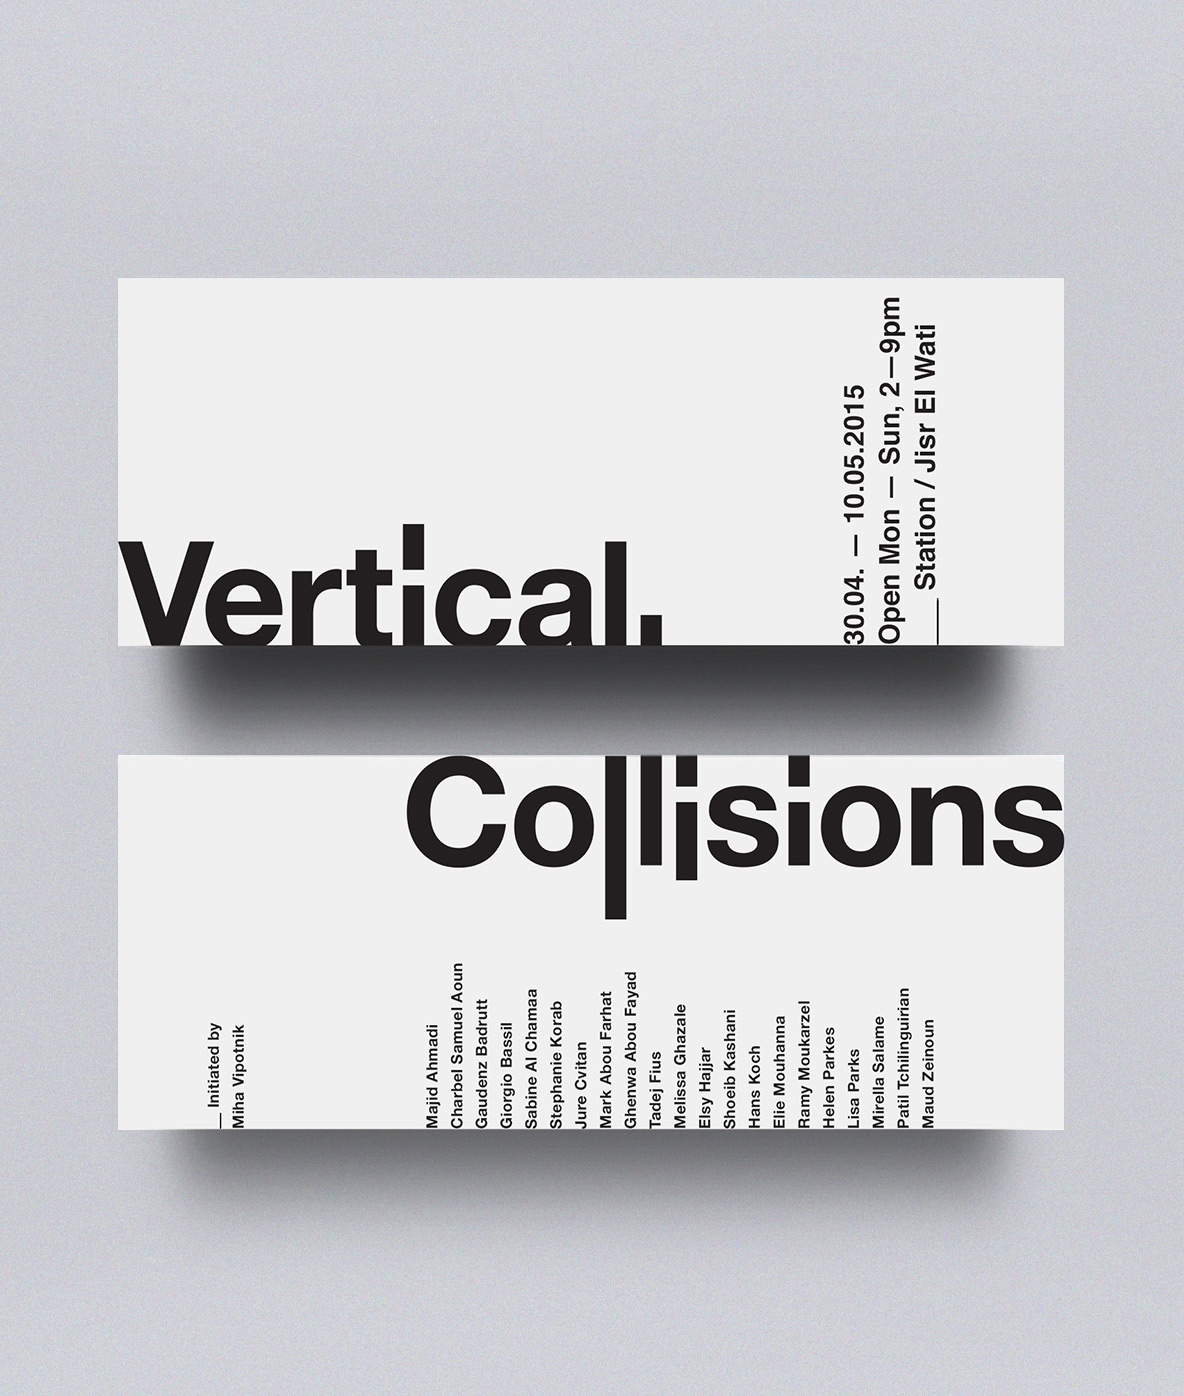 Vertical Collisions